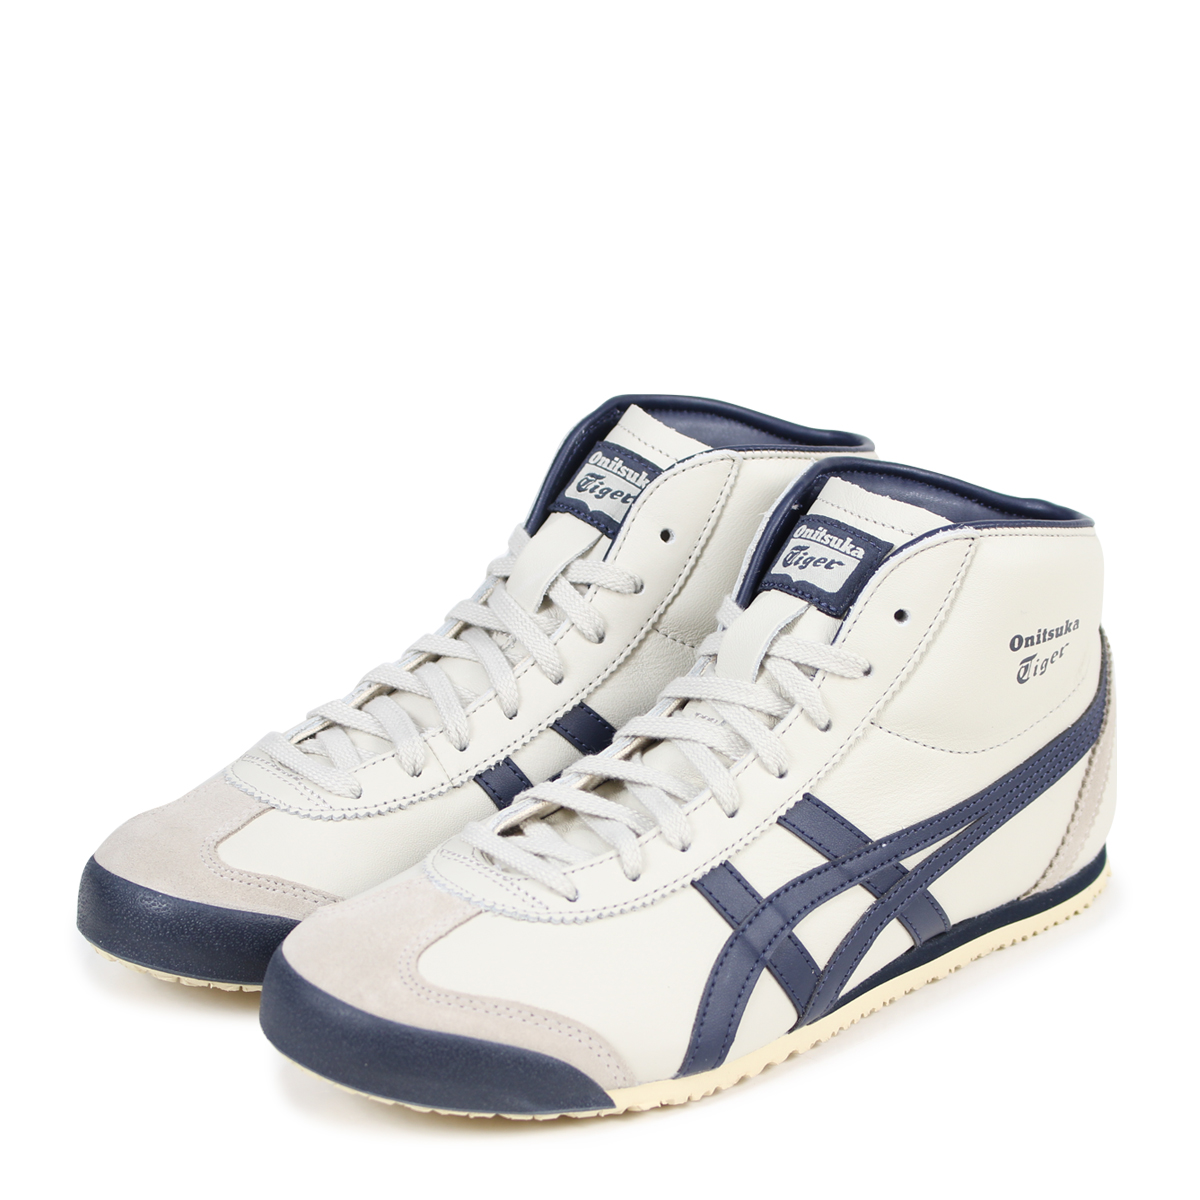 separation shoes 09a09 67207 Onitsuka Tiger MEXICO MID RUNNER Onitsuka tiger Mexico mid runner men  sneakers DL328-1659 THL328-1659 white [193]